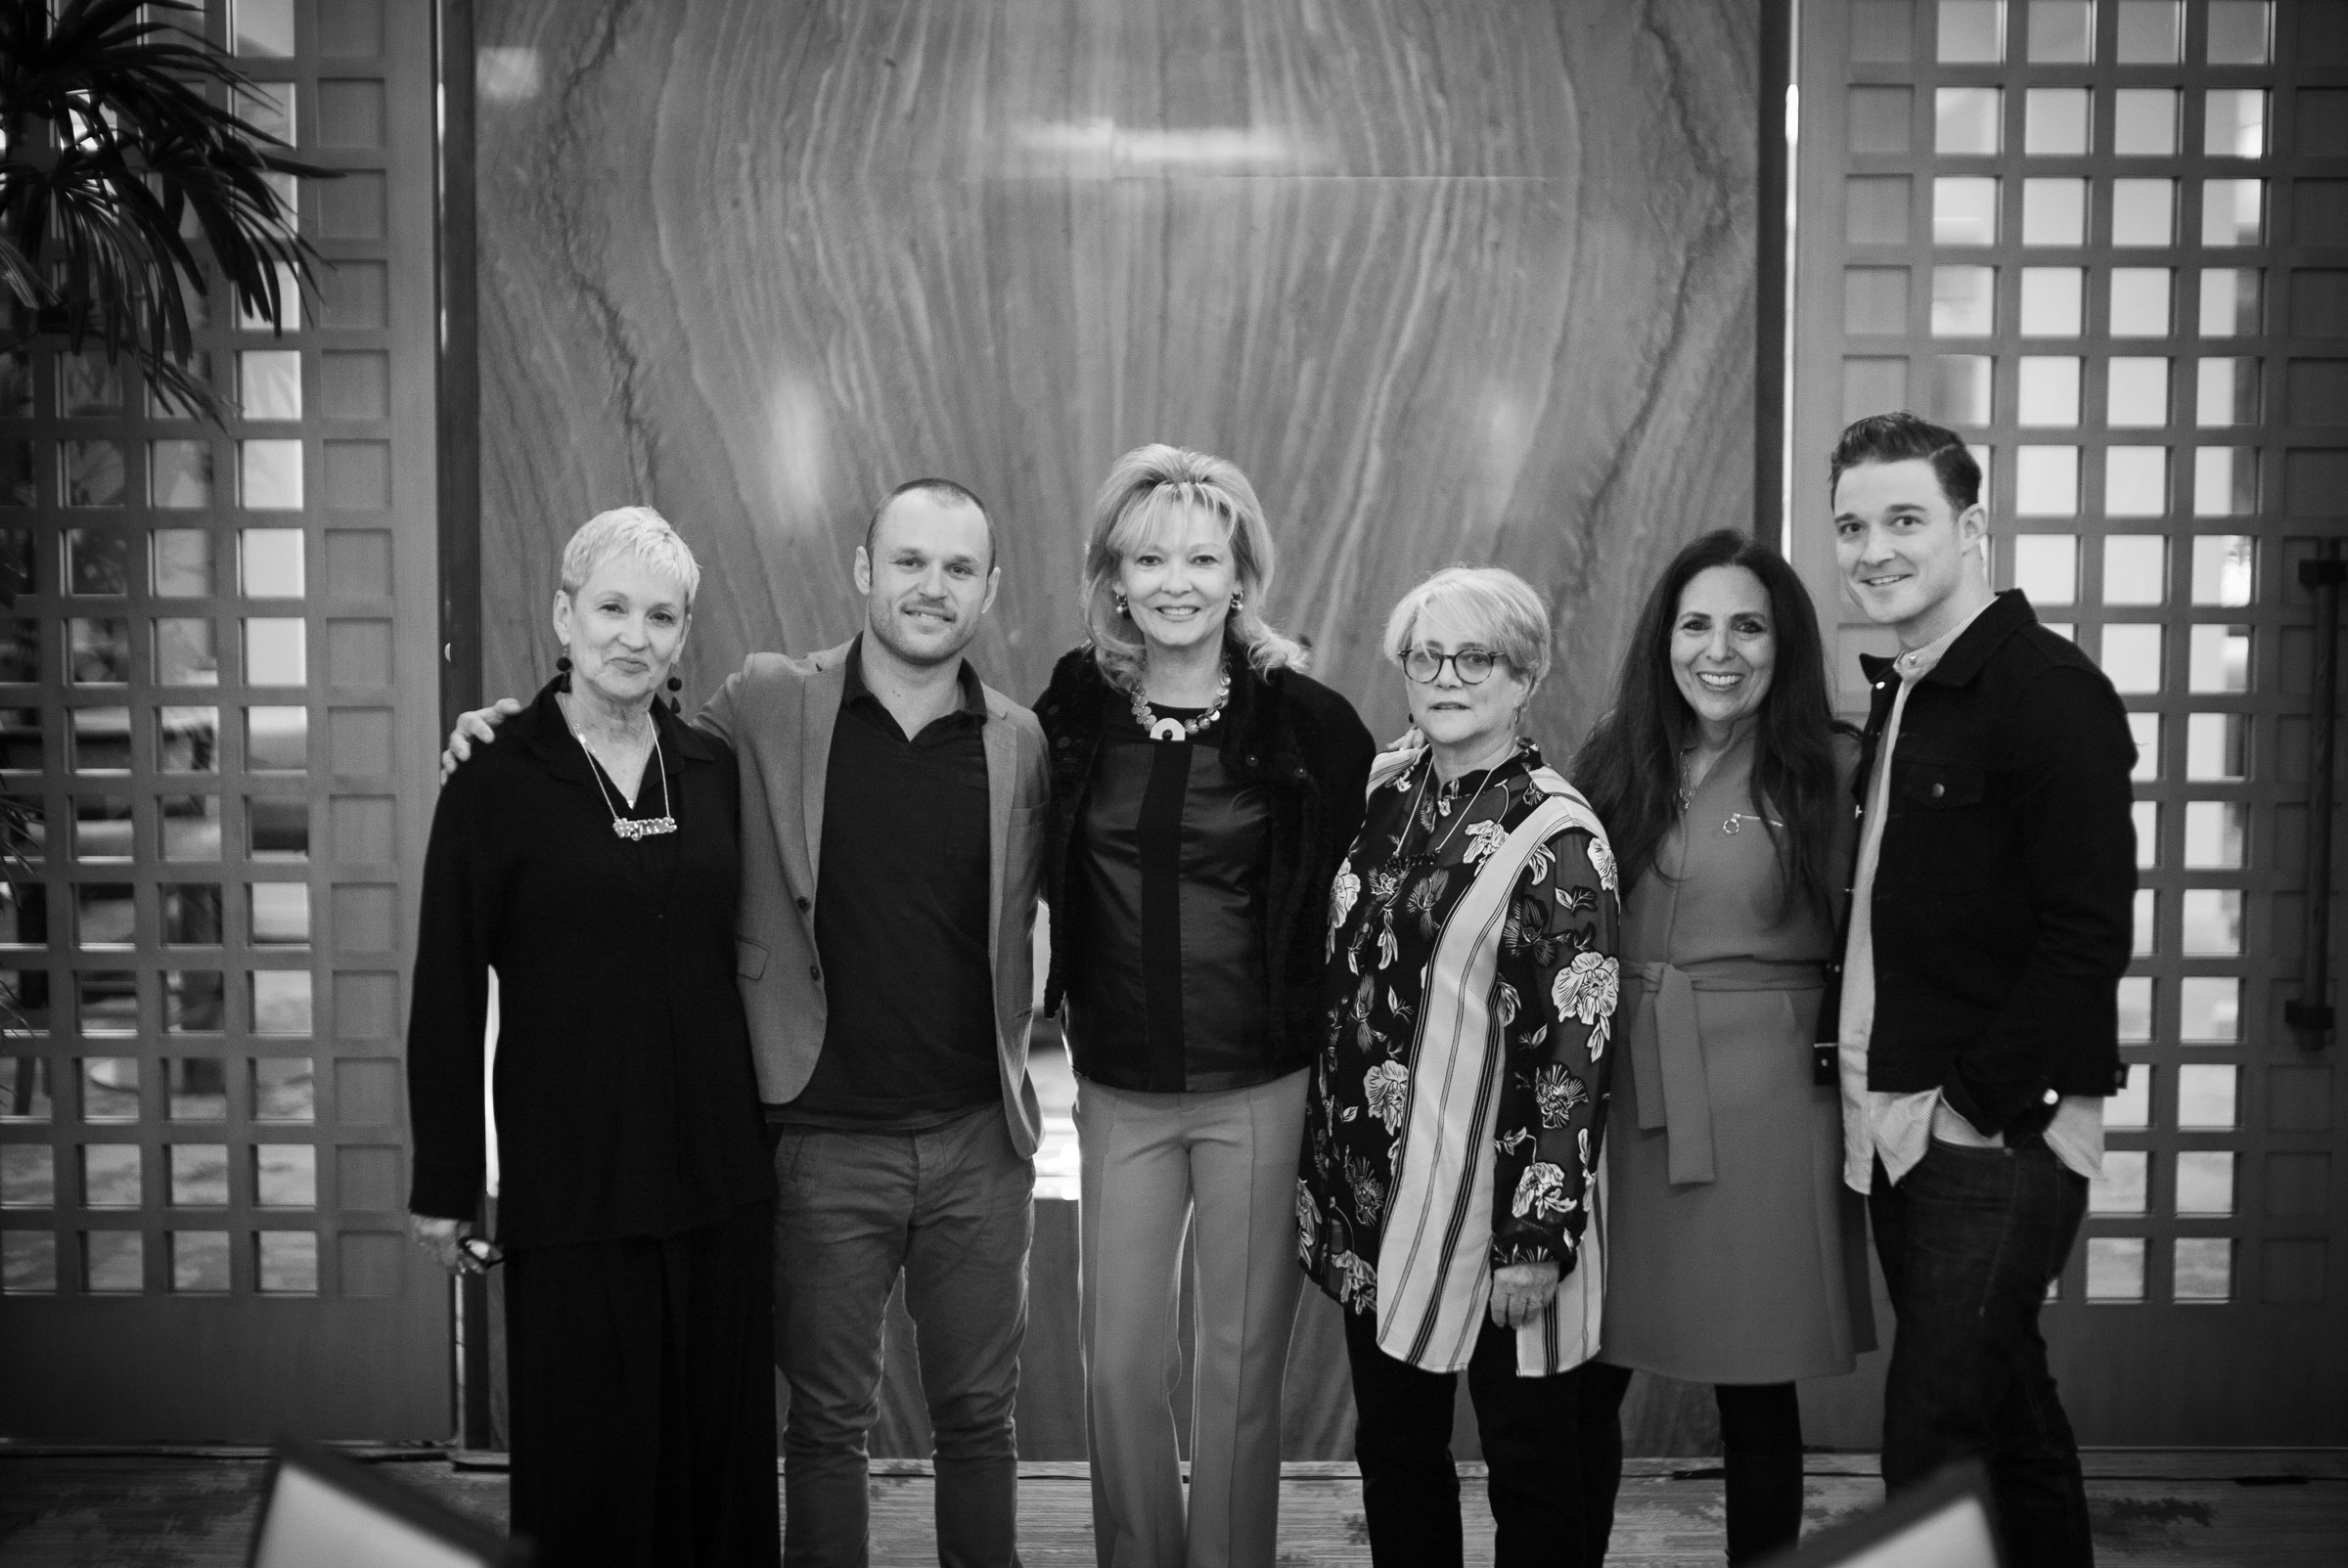 Cofounders Sharon Feldstein and Patsy Noah with Terria Joseph, James Byous, Sheryl Trower, and Sean Patrick Murray